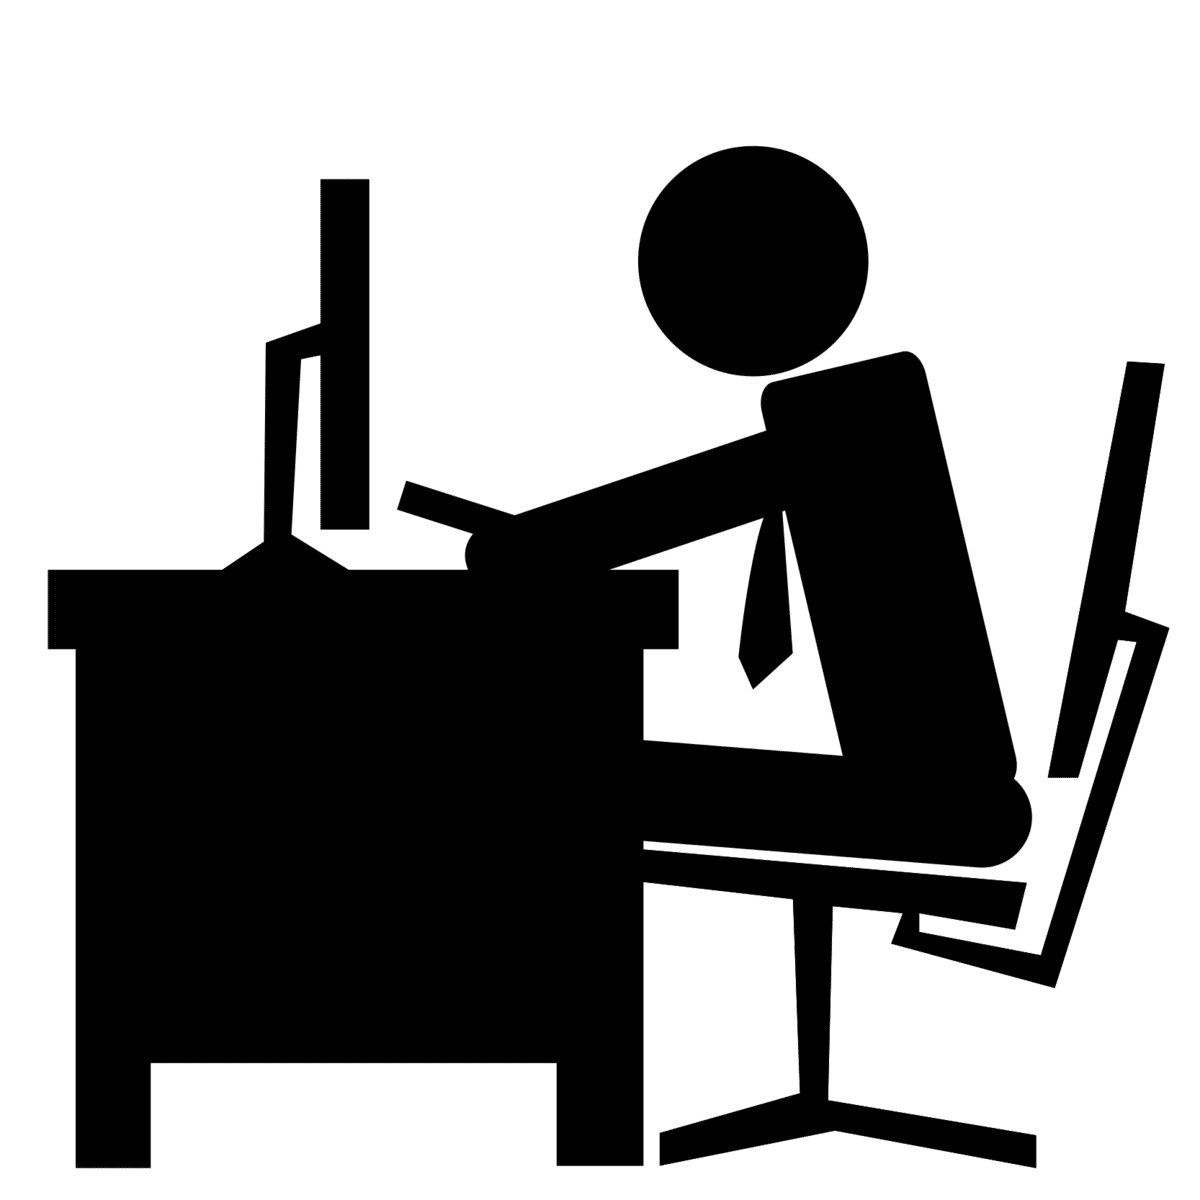 black-office-worker-icon_76222